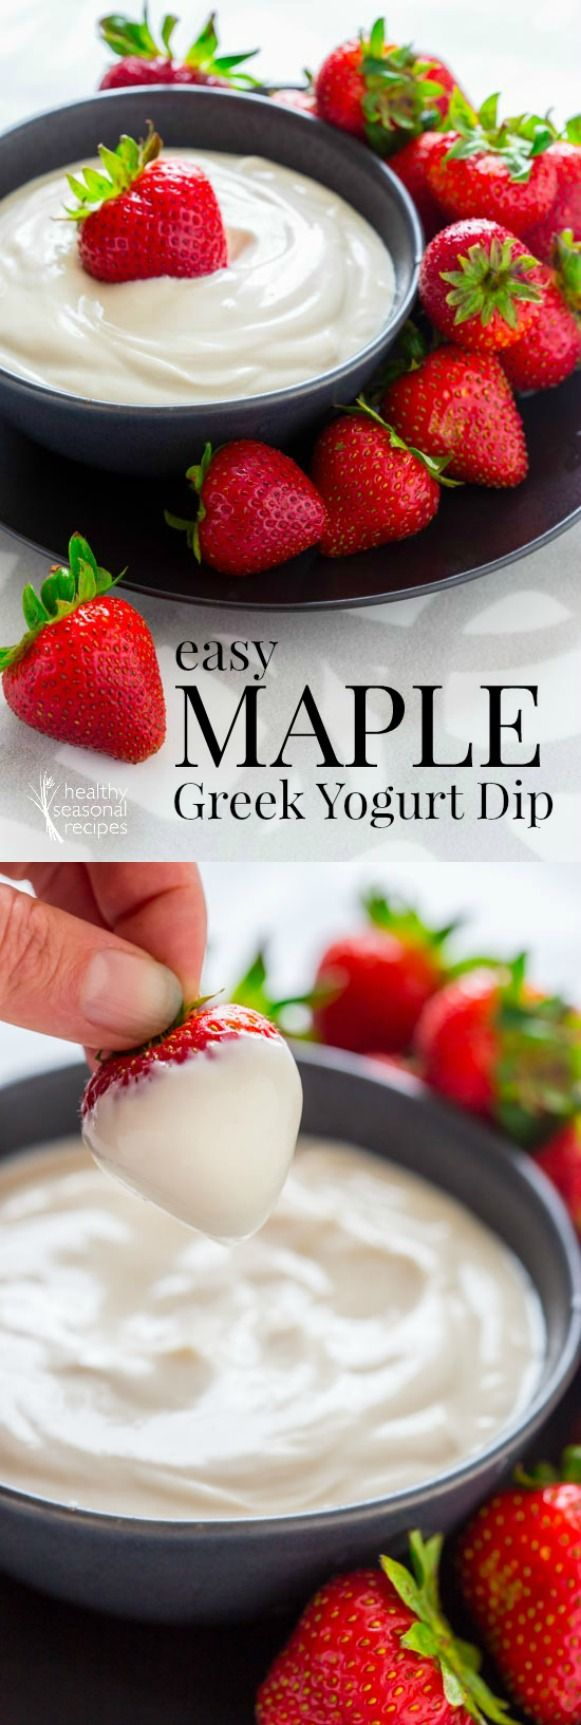 easy maple greek yogurt dip - Healthy Seasonal Recipes